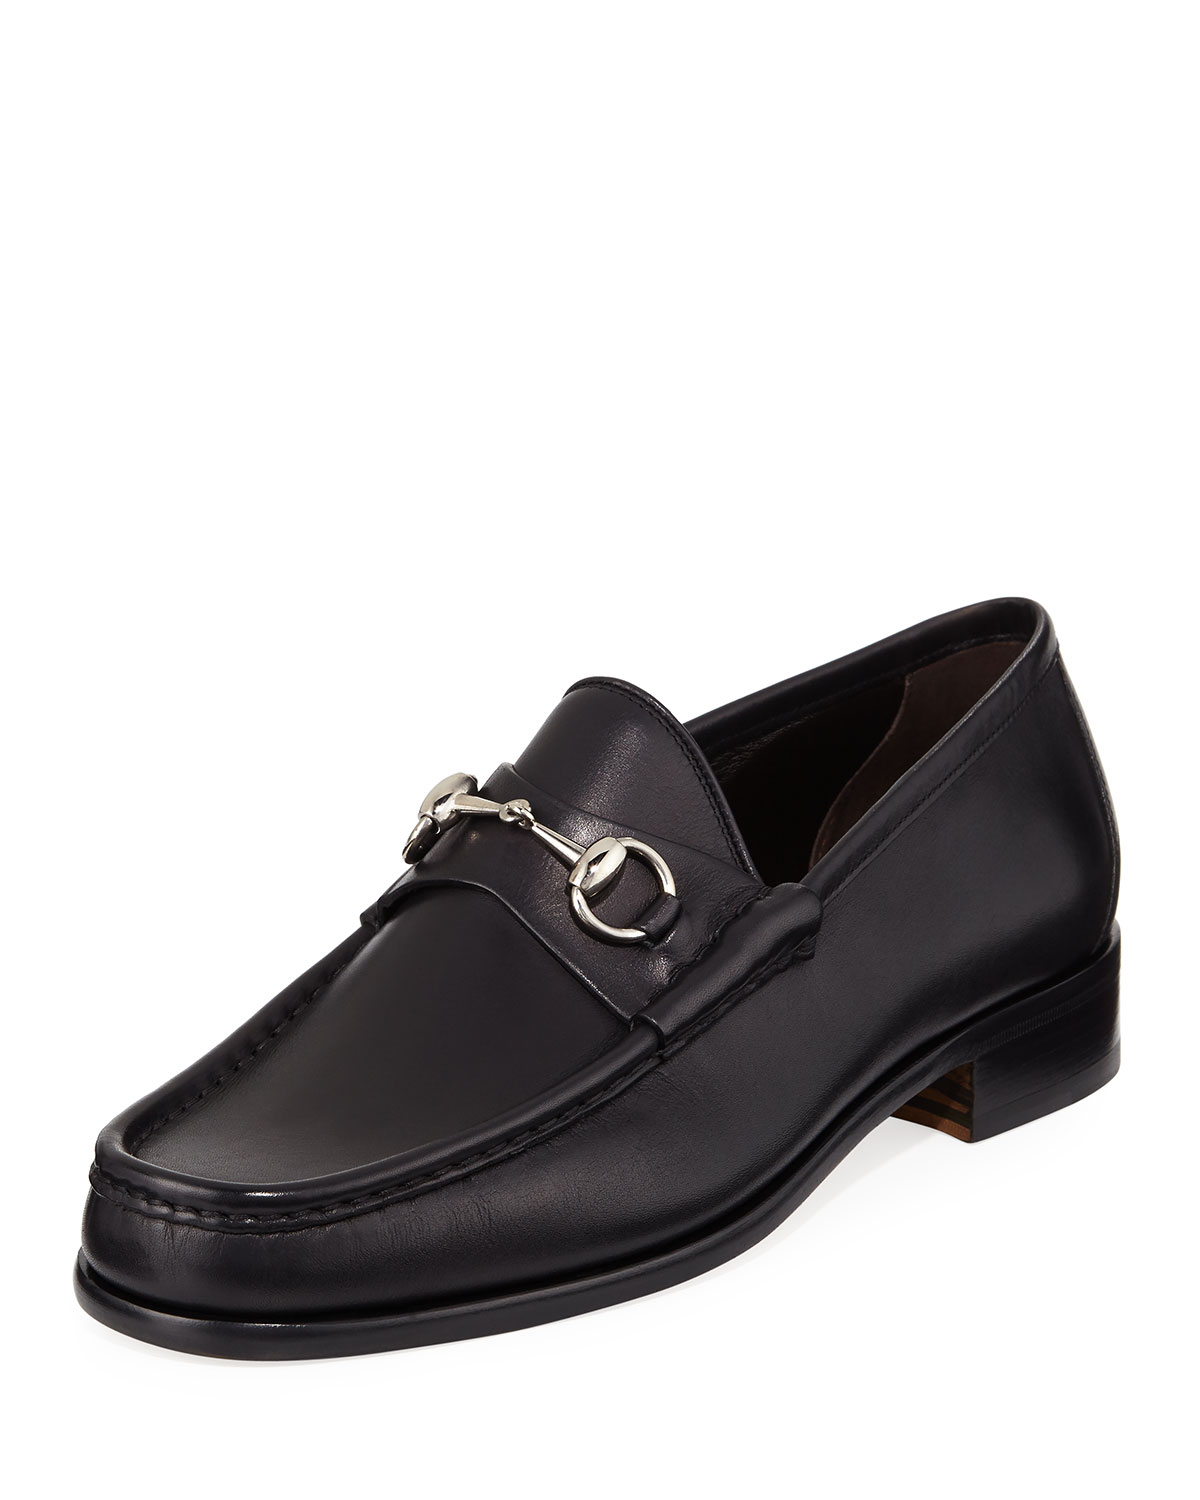 adaa32f0a19 Gucci Classic Leather Horsebit Loafer